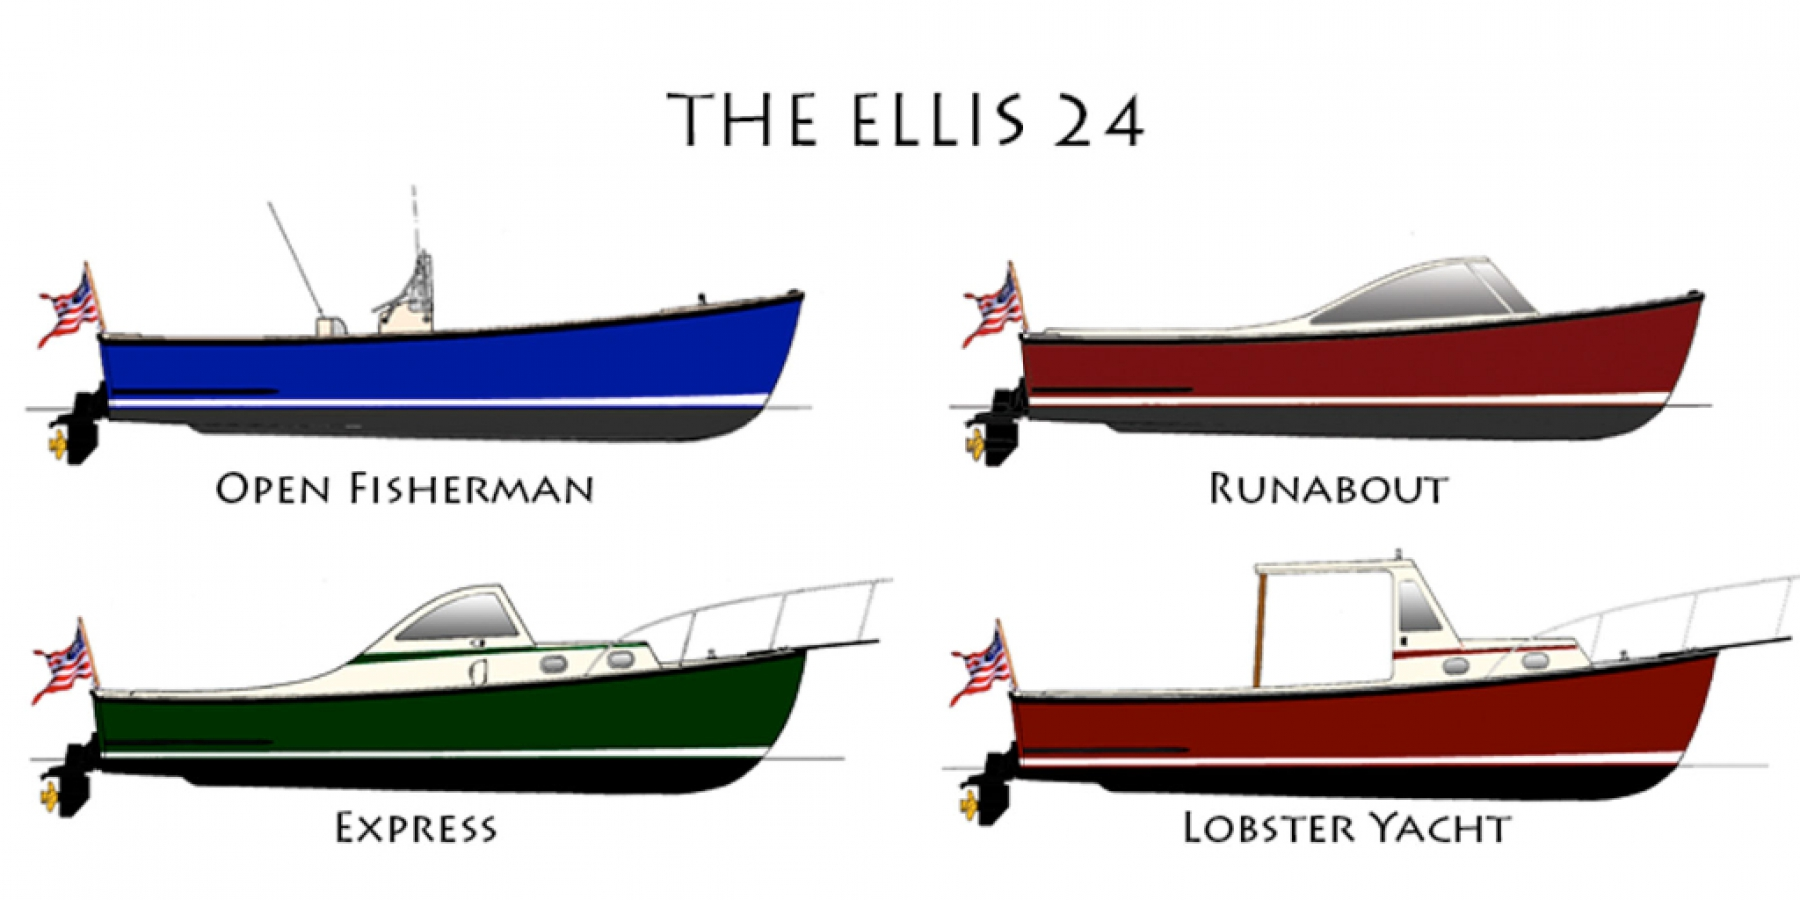 Ellis 24 Profiles - Four different Ellis 24 Models